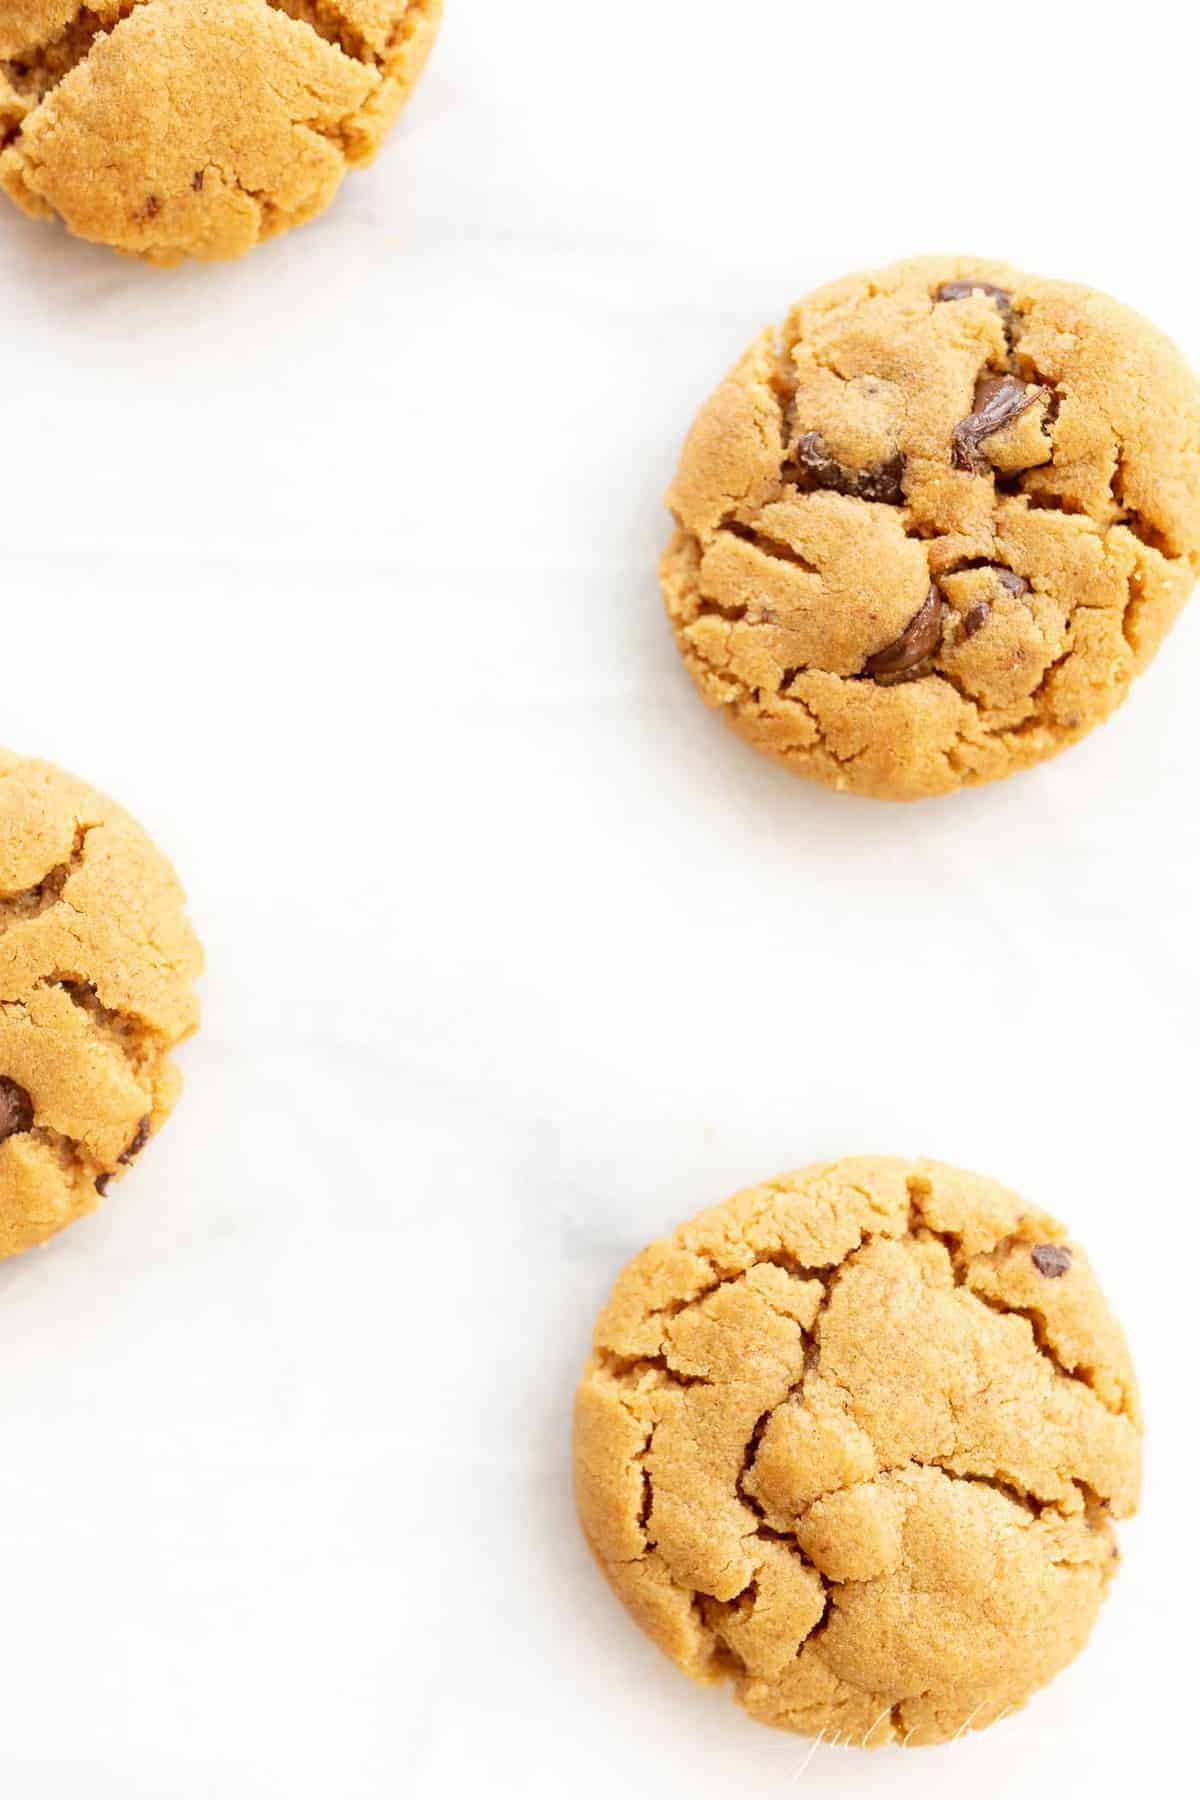 gluten free peanut butter chocolate chip cookies scattered on marble counter